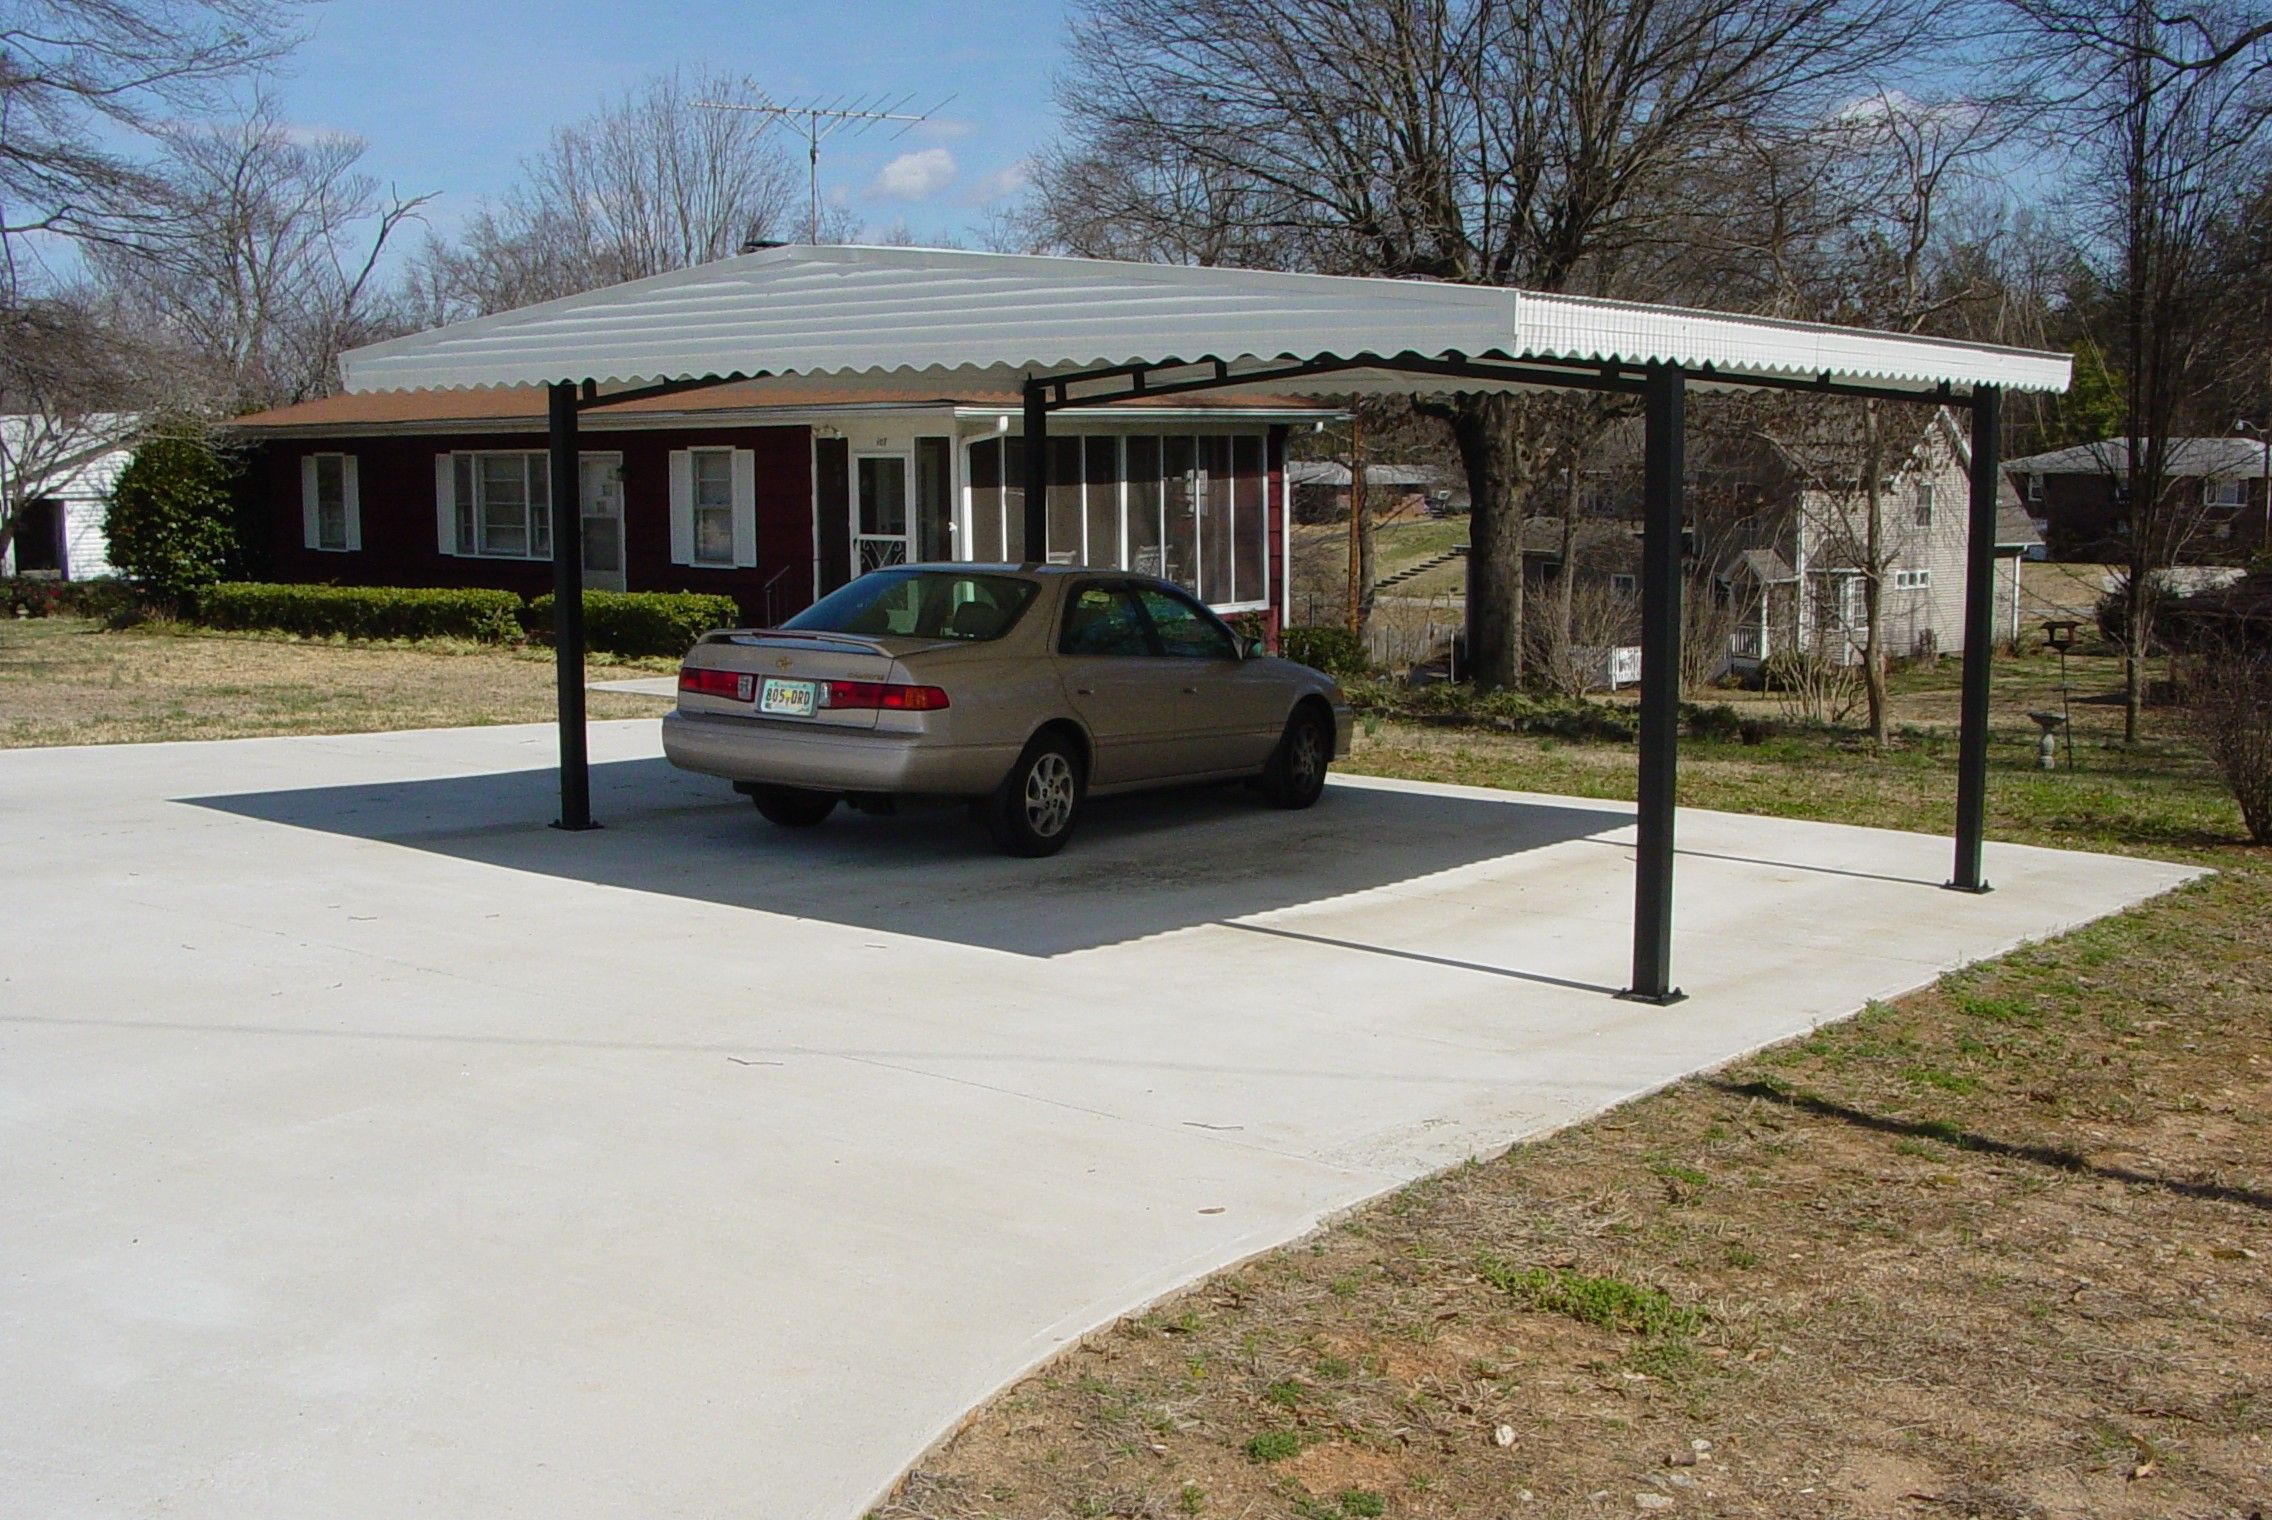 Carport for rv Carport prices, Carport plans, Carport garage